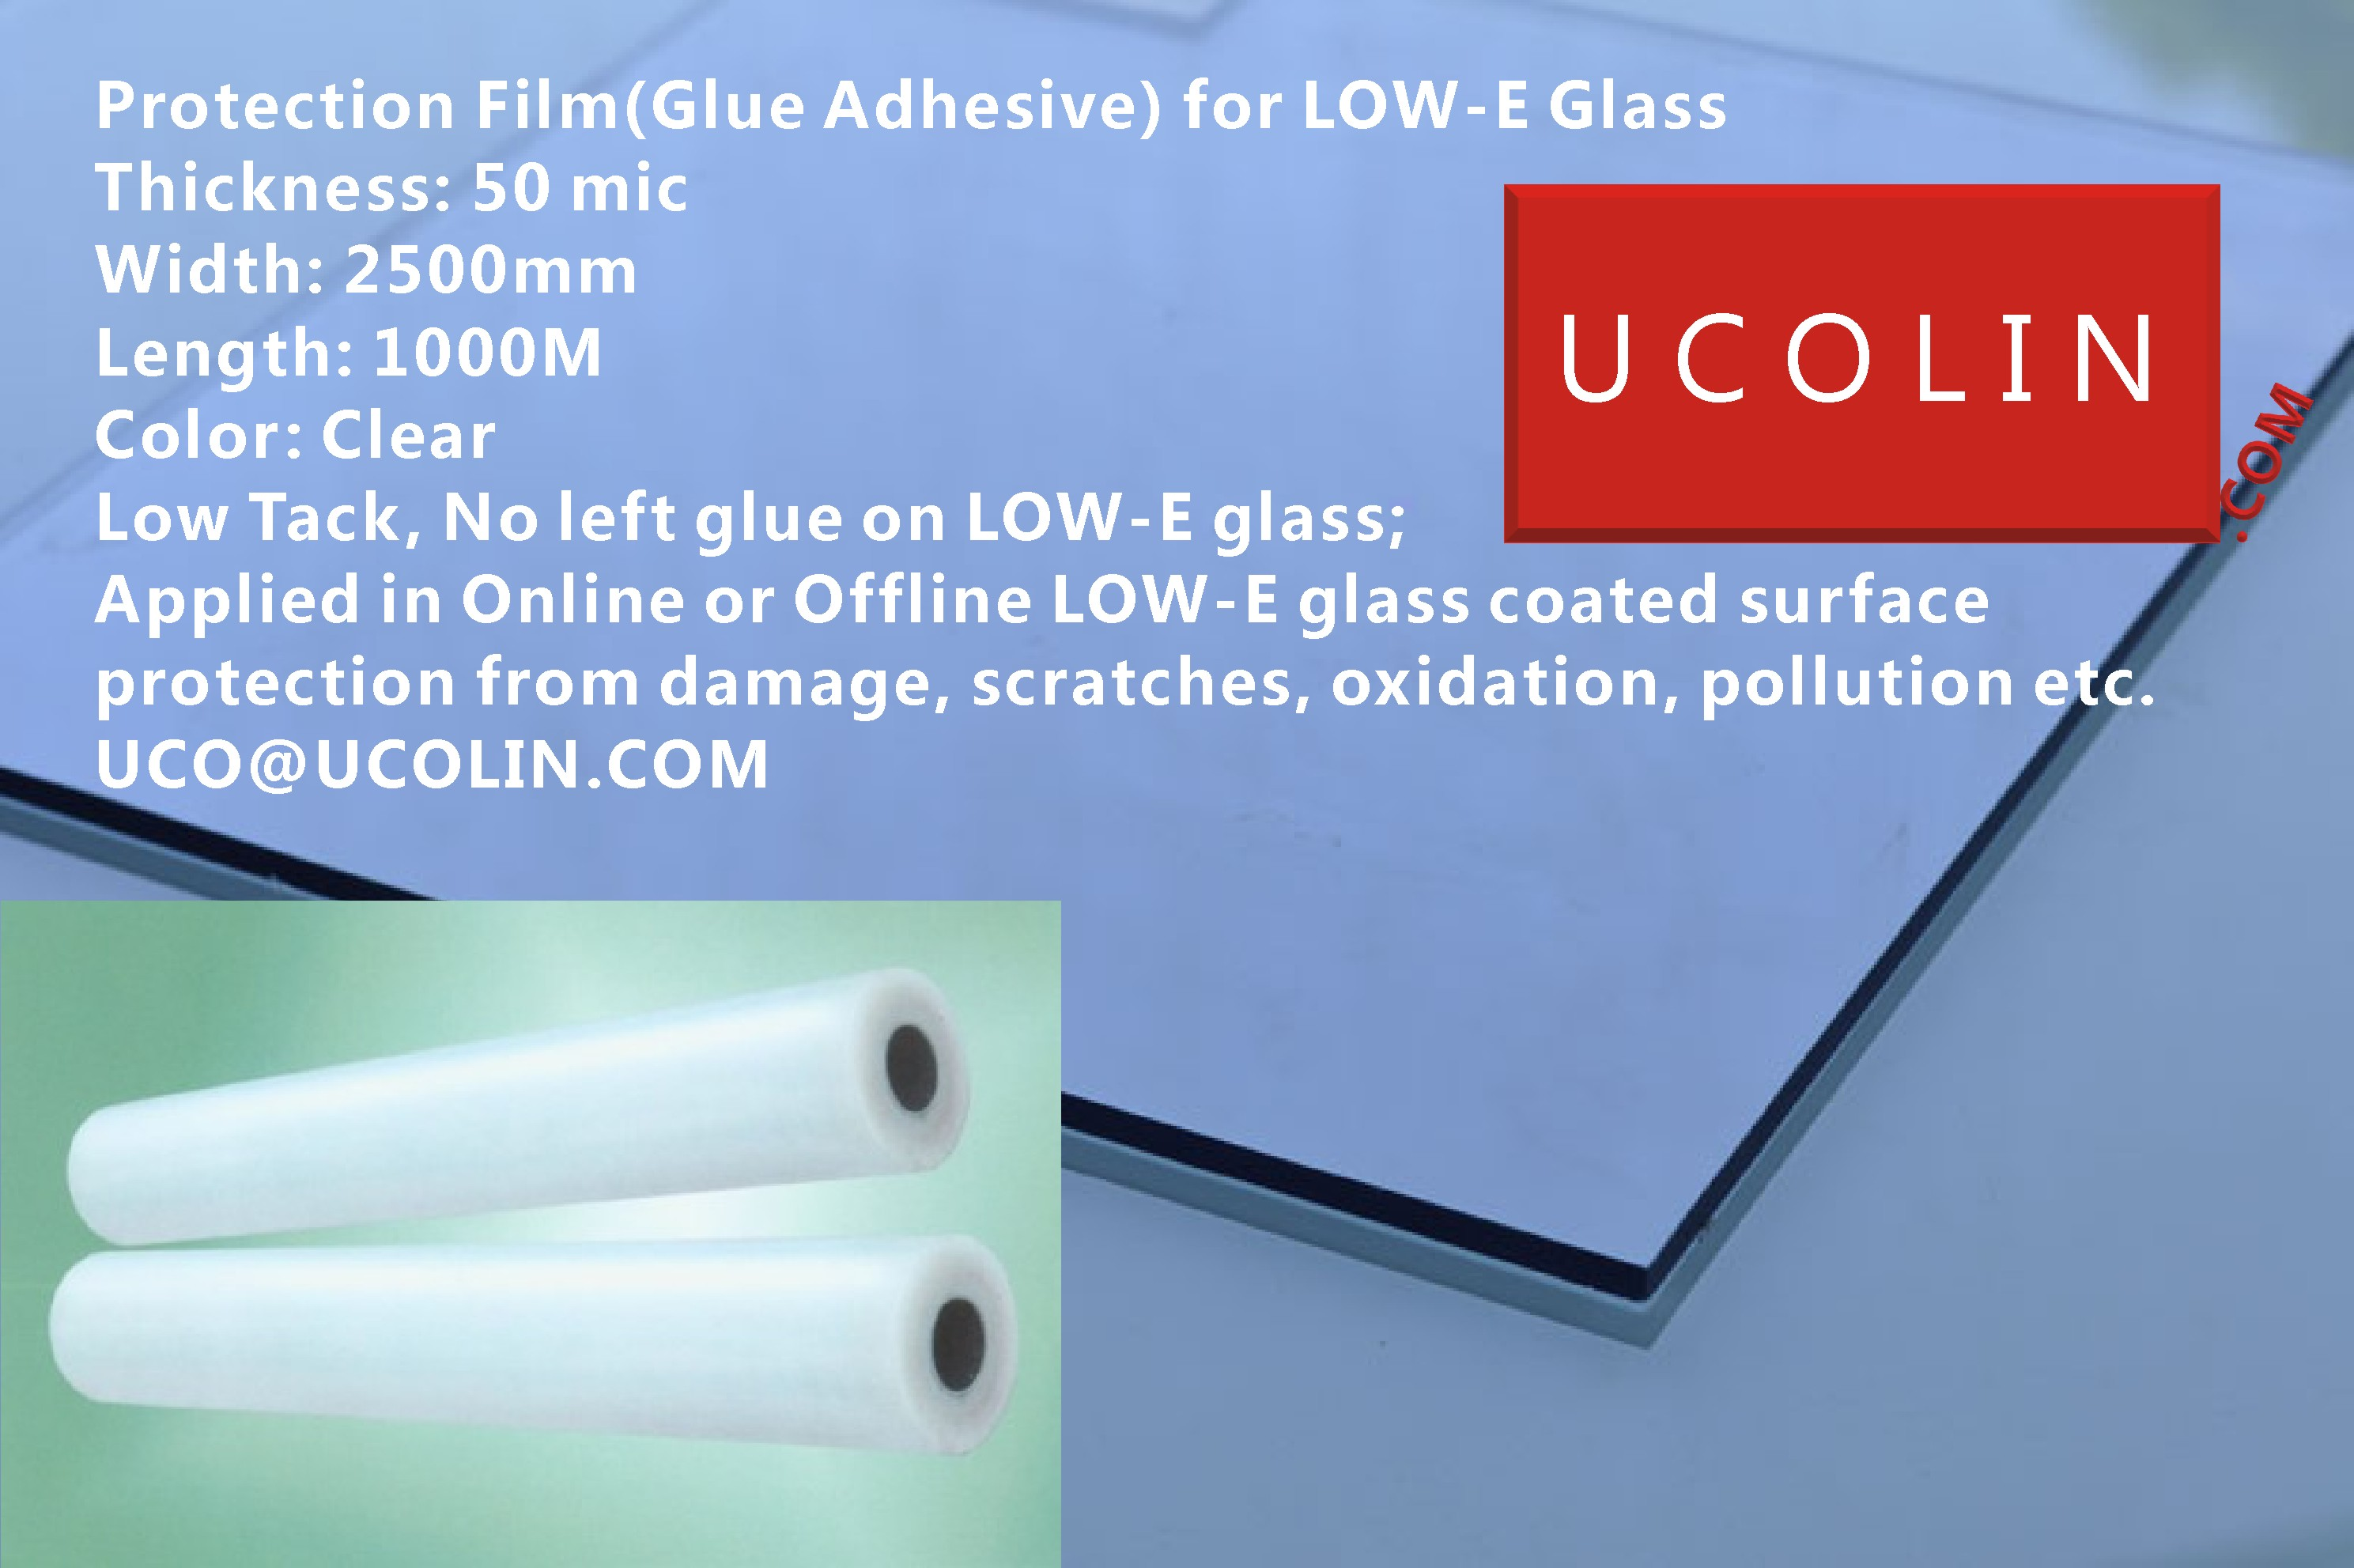 Protection Film(Glue Adhesive) for LOW-E Glass